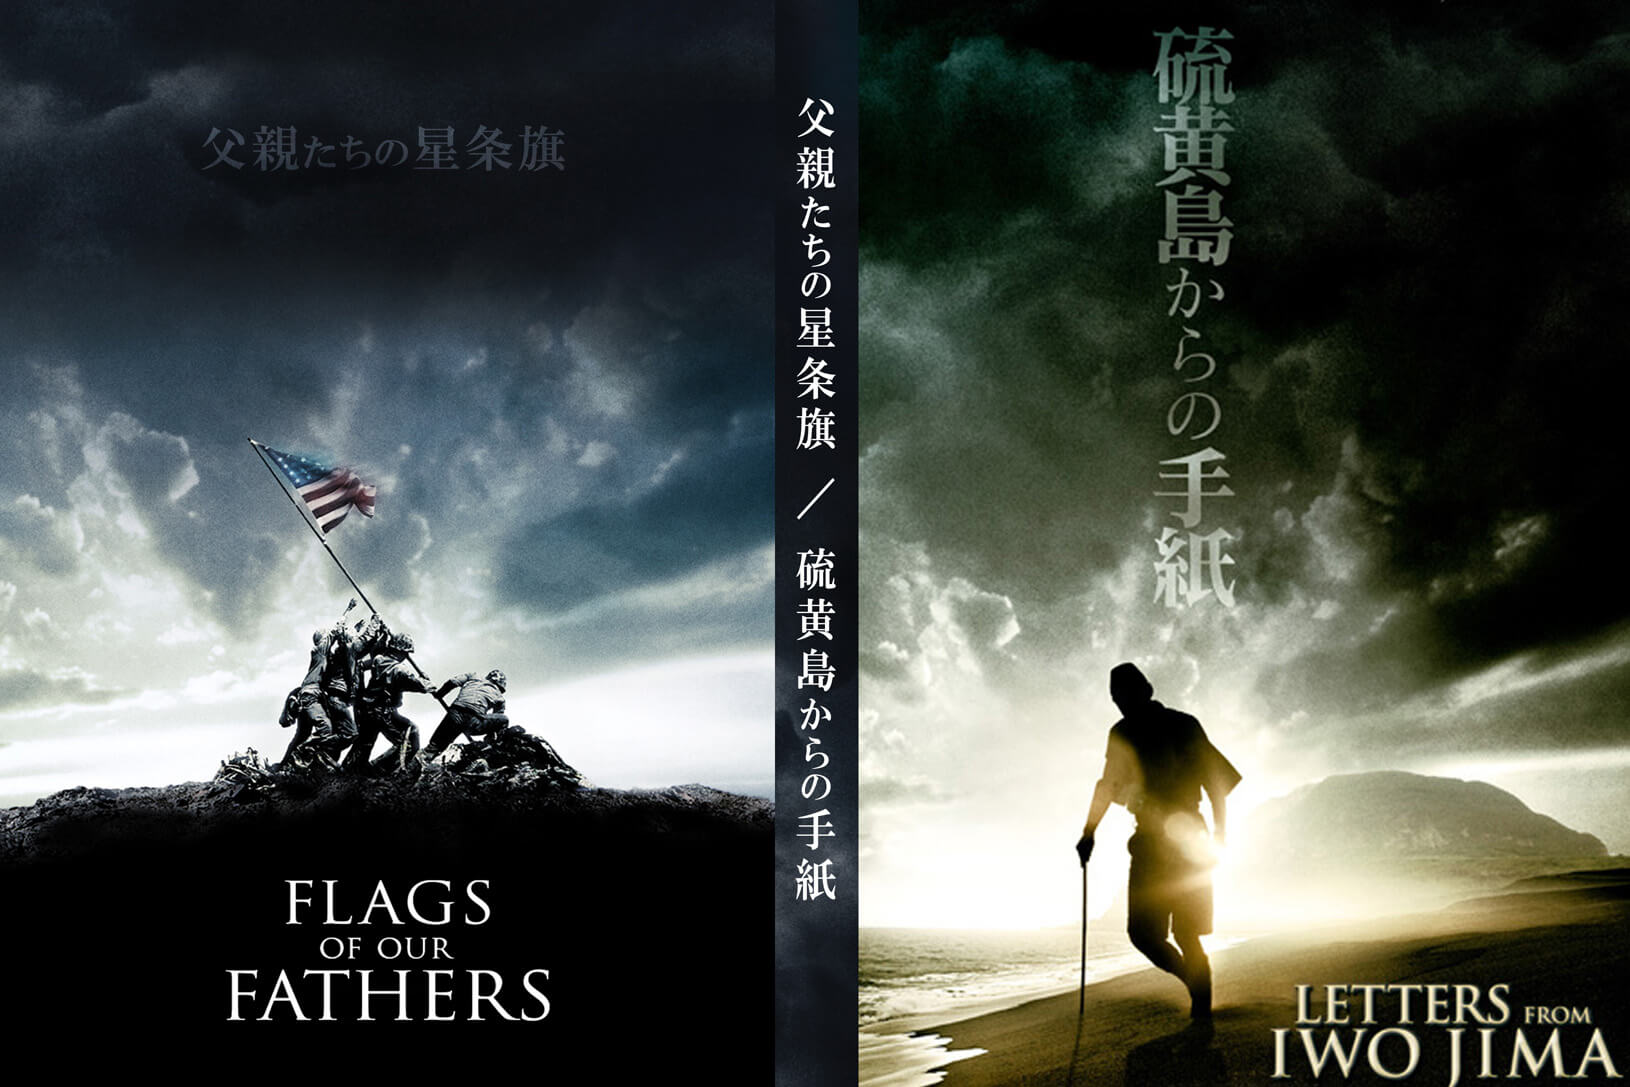 flags of our fathers letters